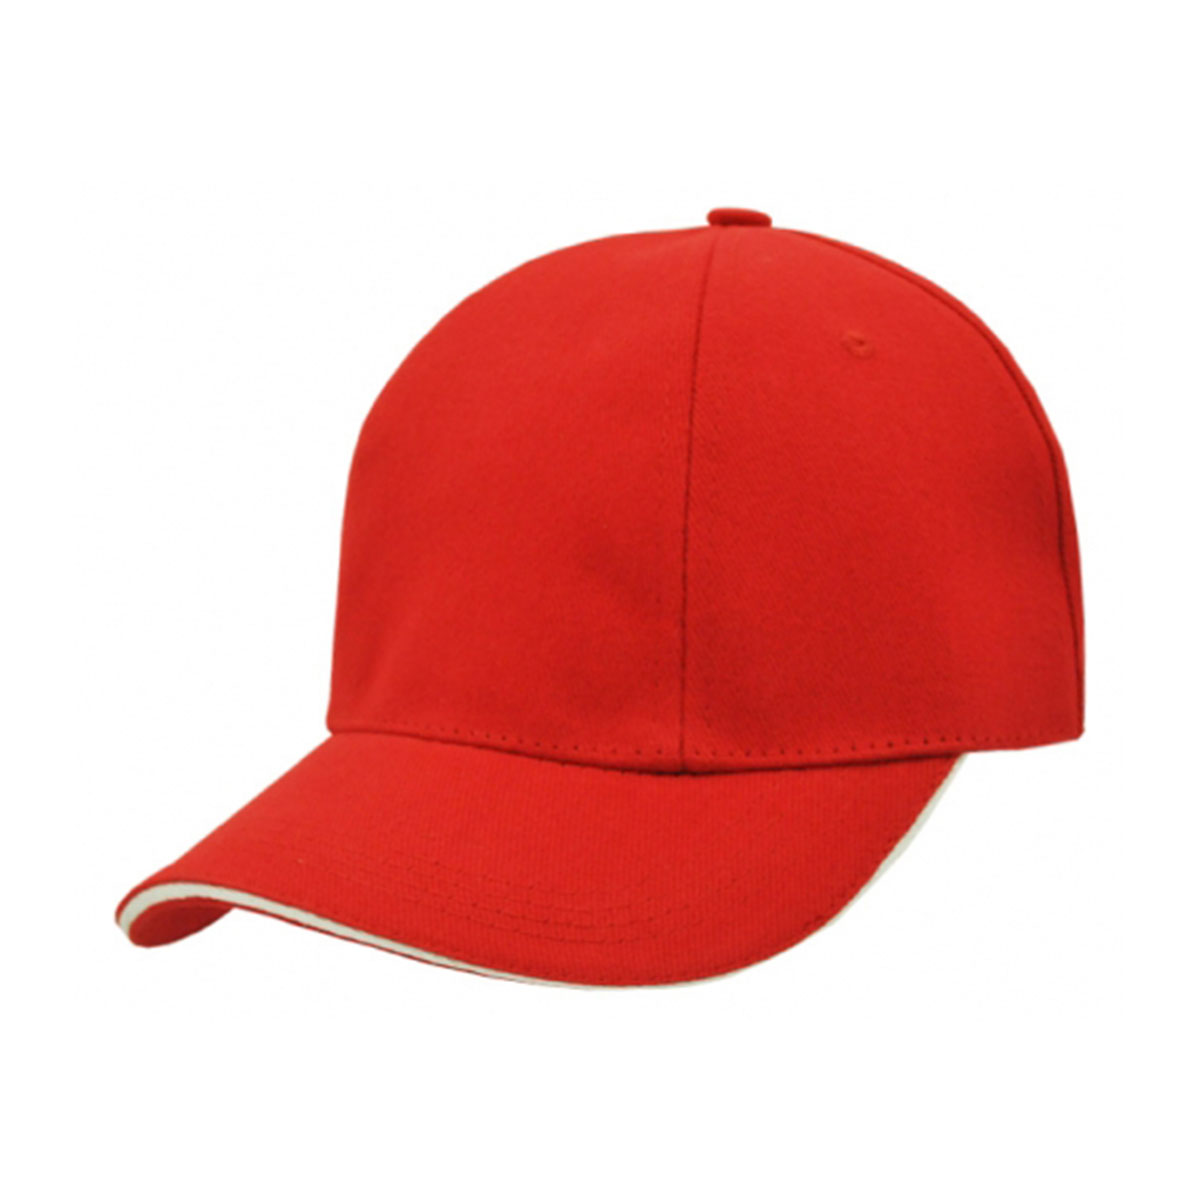 HBC Rotated Panel Cap-Red / White